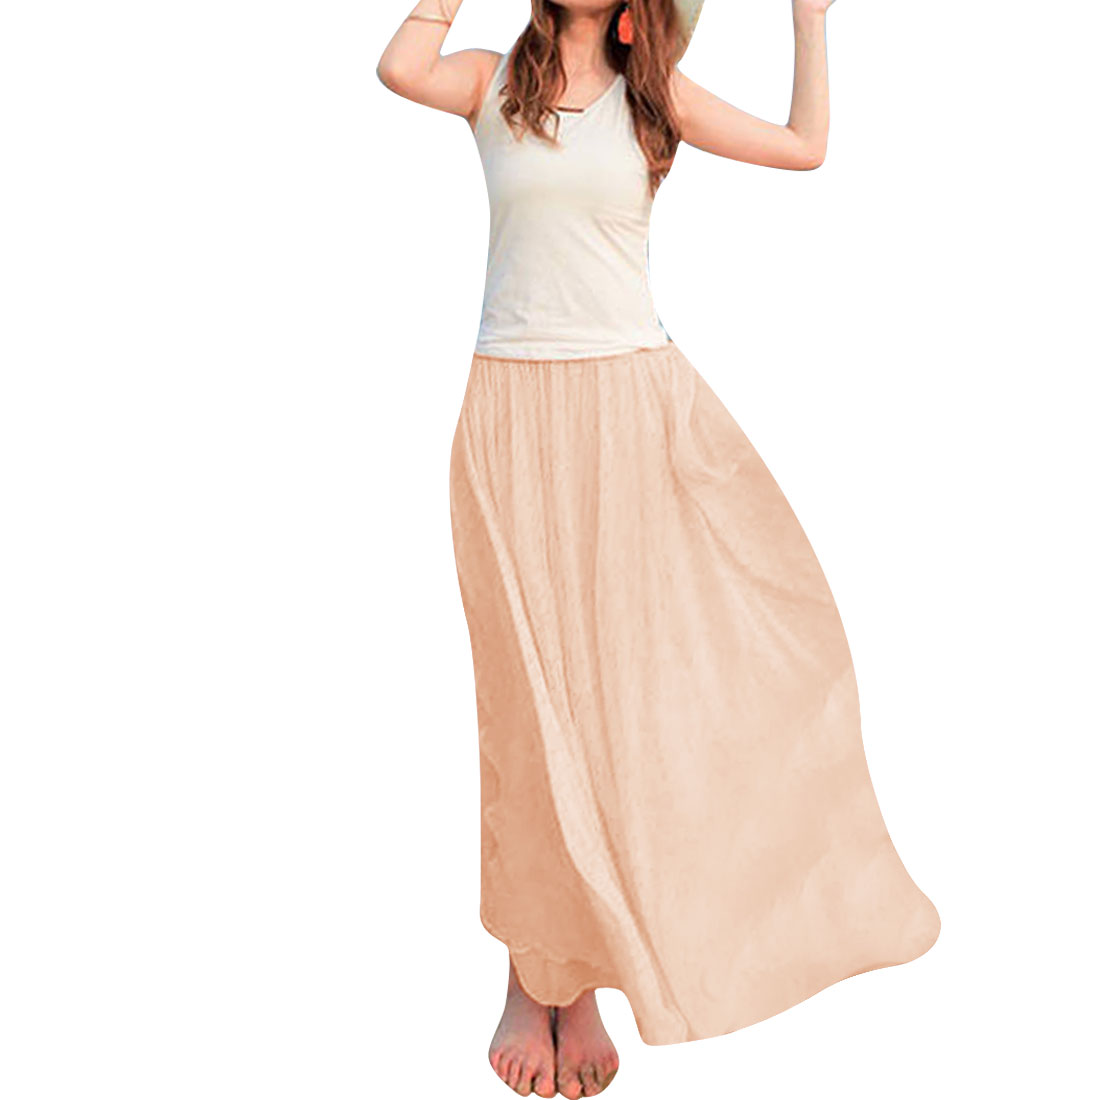 Women Stretchy Waist Semi Sheer Skirt Apricot XS